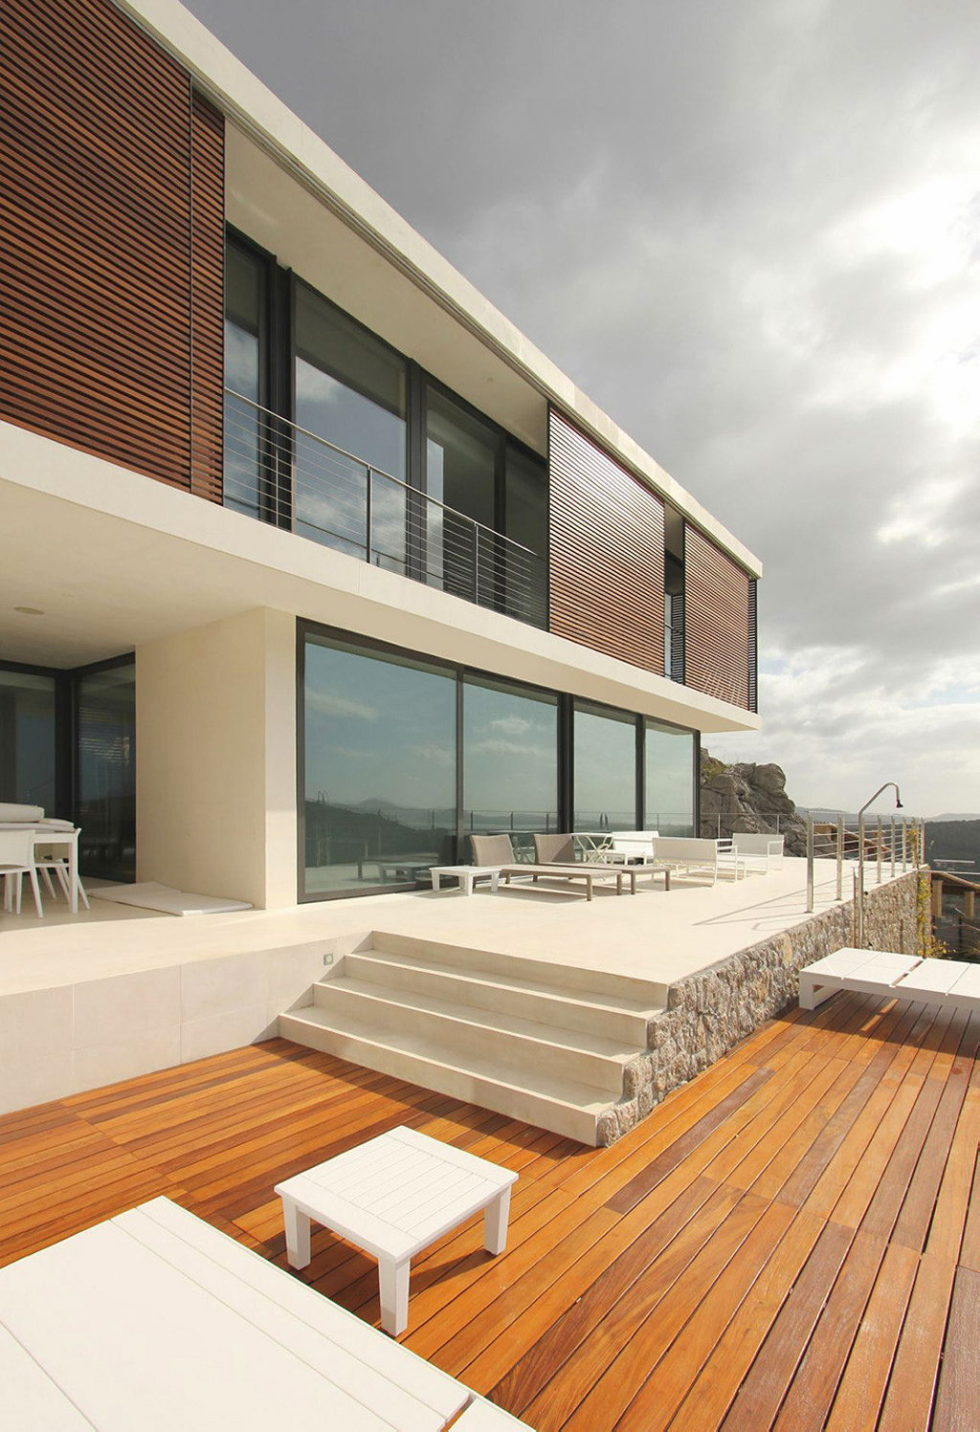 Casa 115 From Miquel Angel Lacomba Architect Studio The House In Spain, Overlooking The Picturesque Valley 11